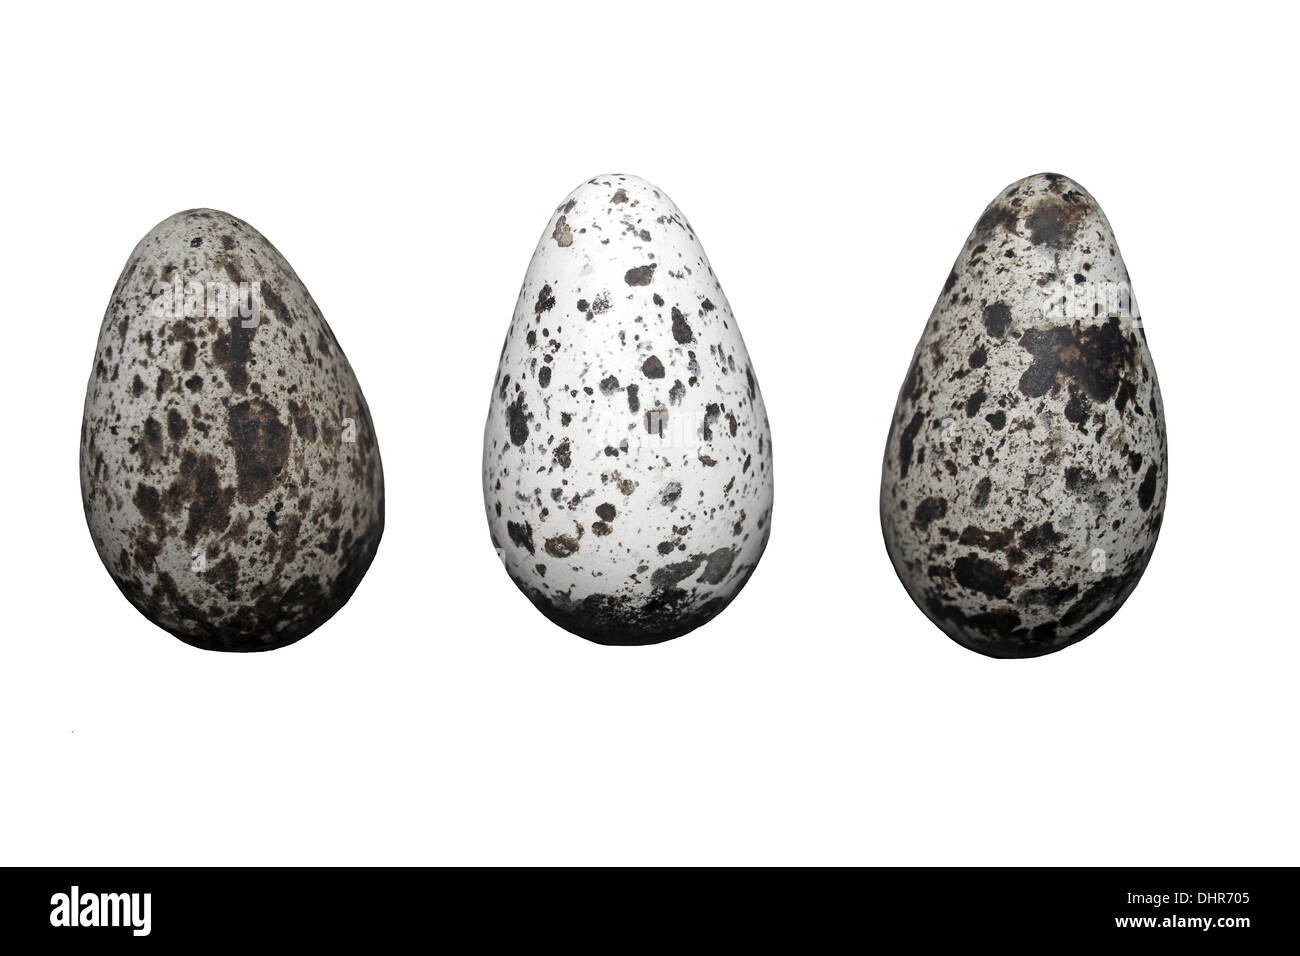 Three Common Guillemot Uria aalge Eggs Showing Variation In Patterning Stock Photo